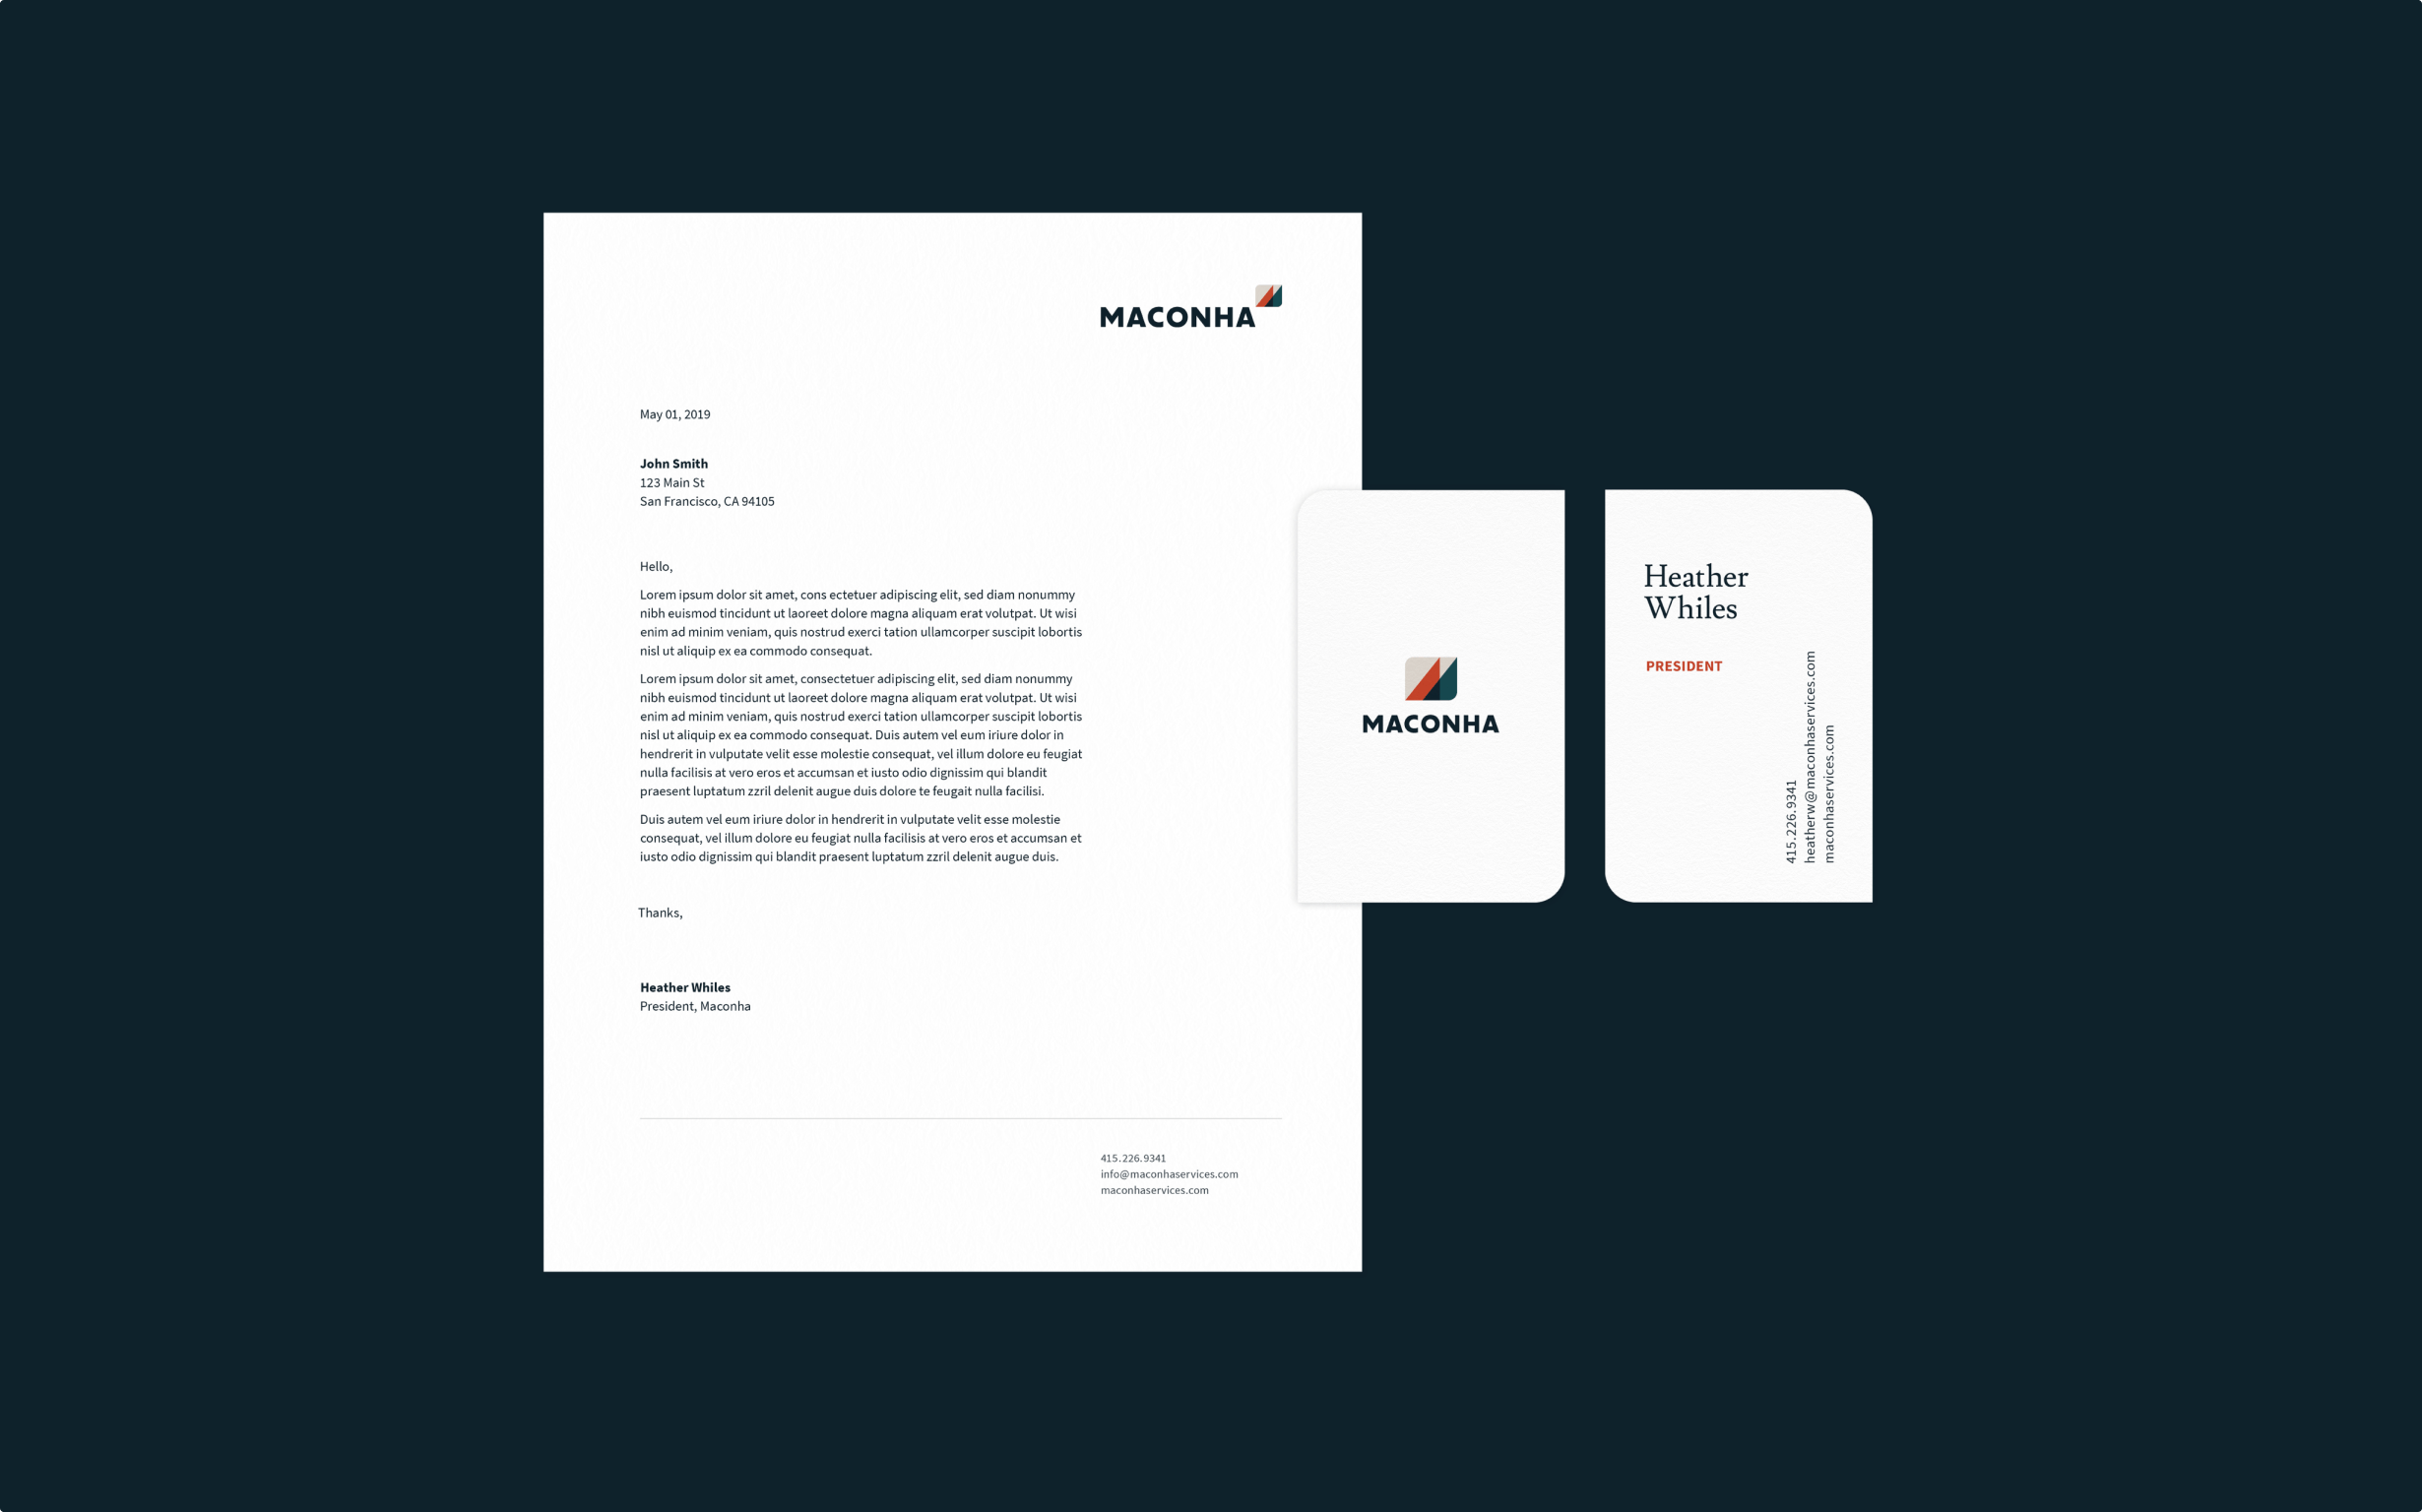 The Maconha brand is expressed on printed materials including business cards and a letterhead.